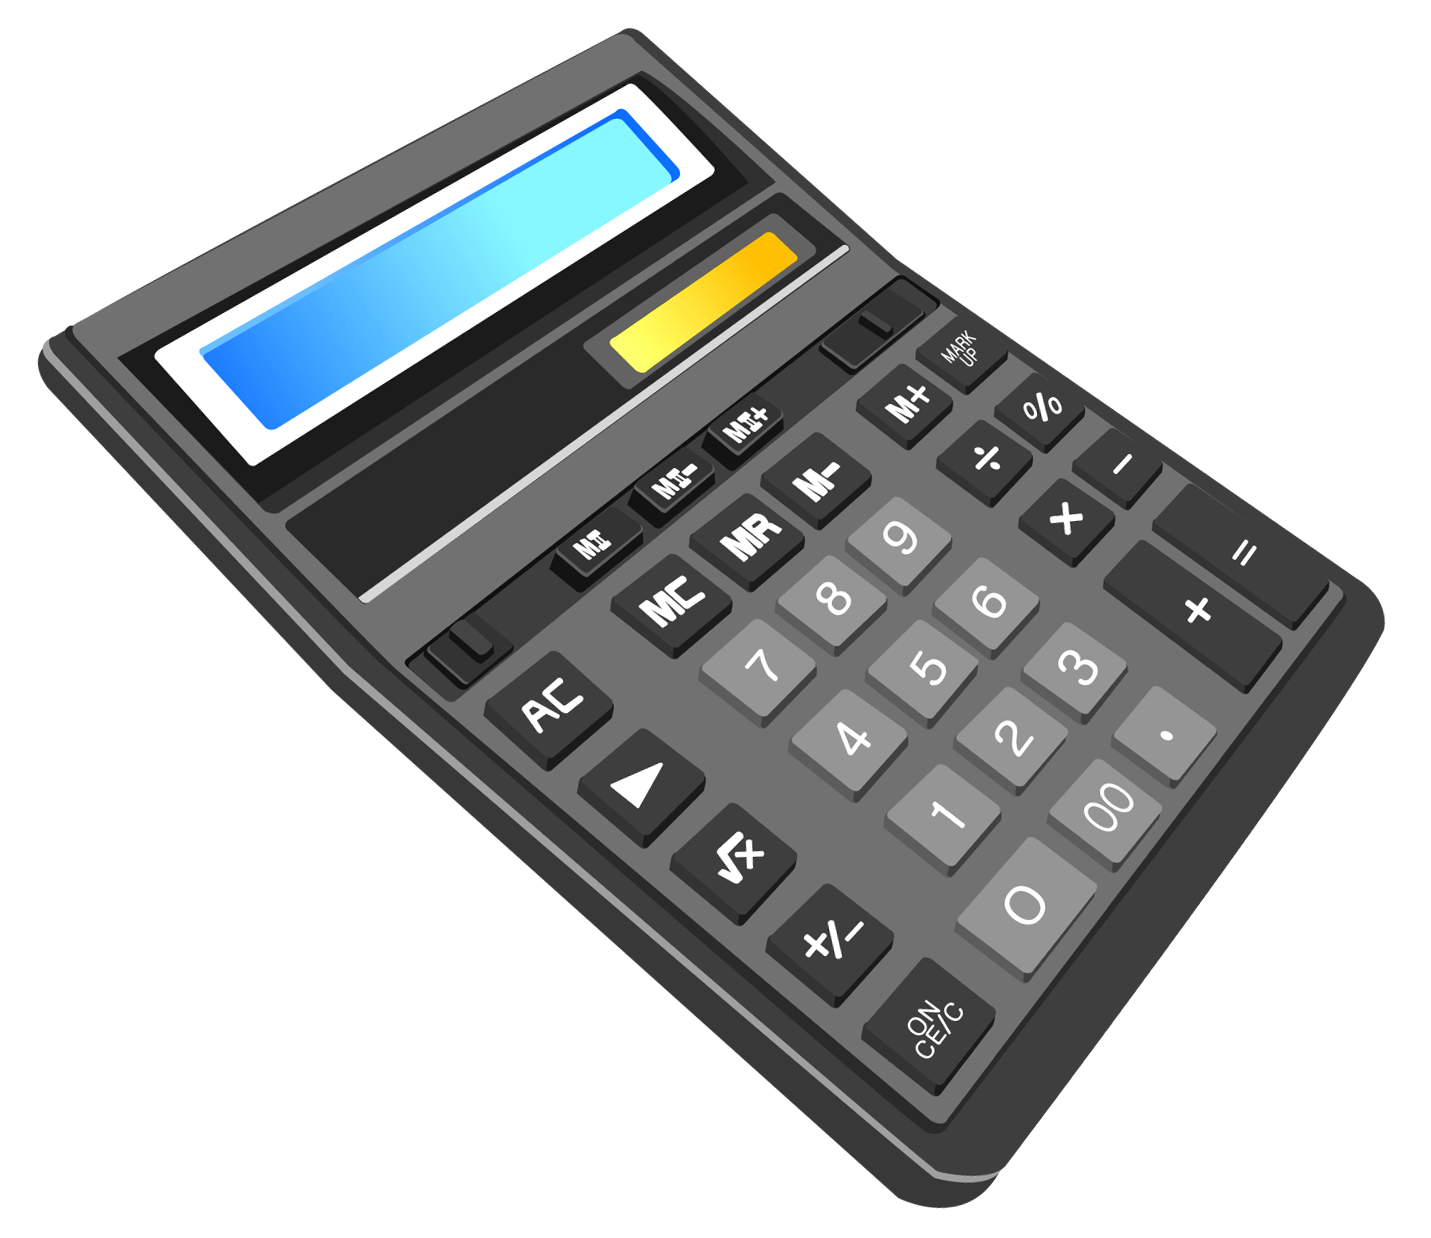 Png gallery yopriceville high. Calculator clipart transparent background